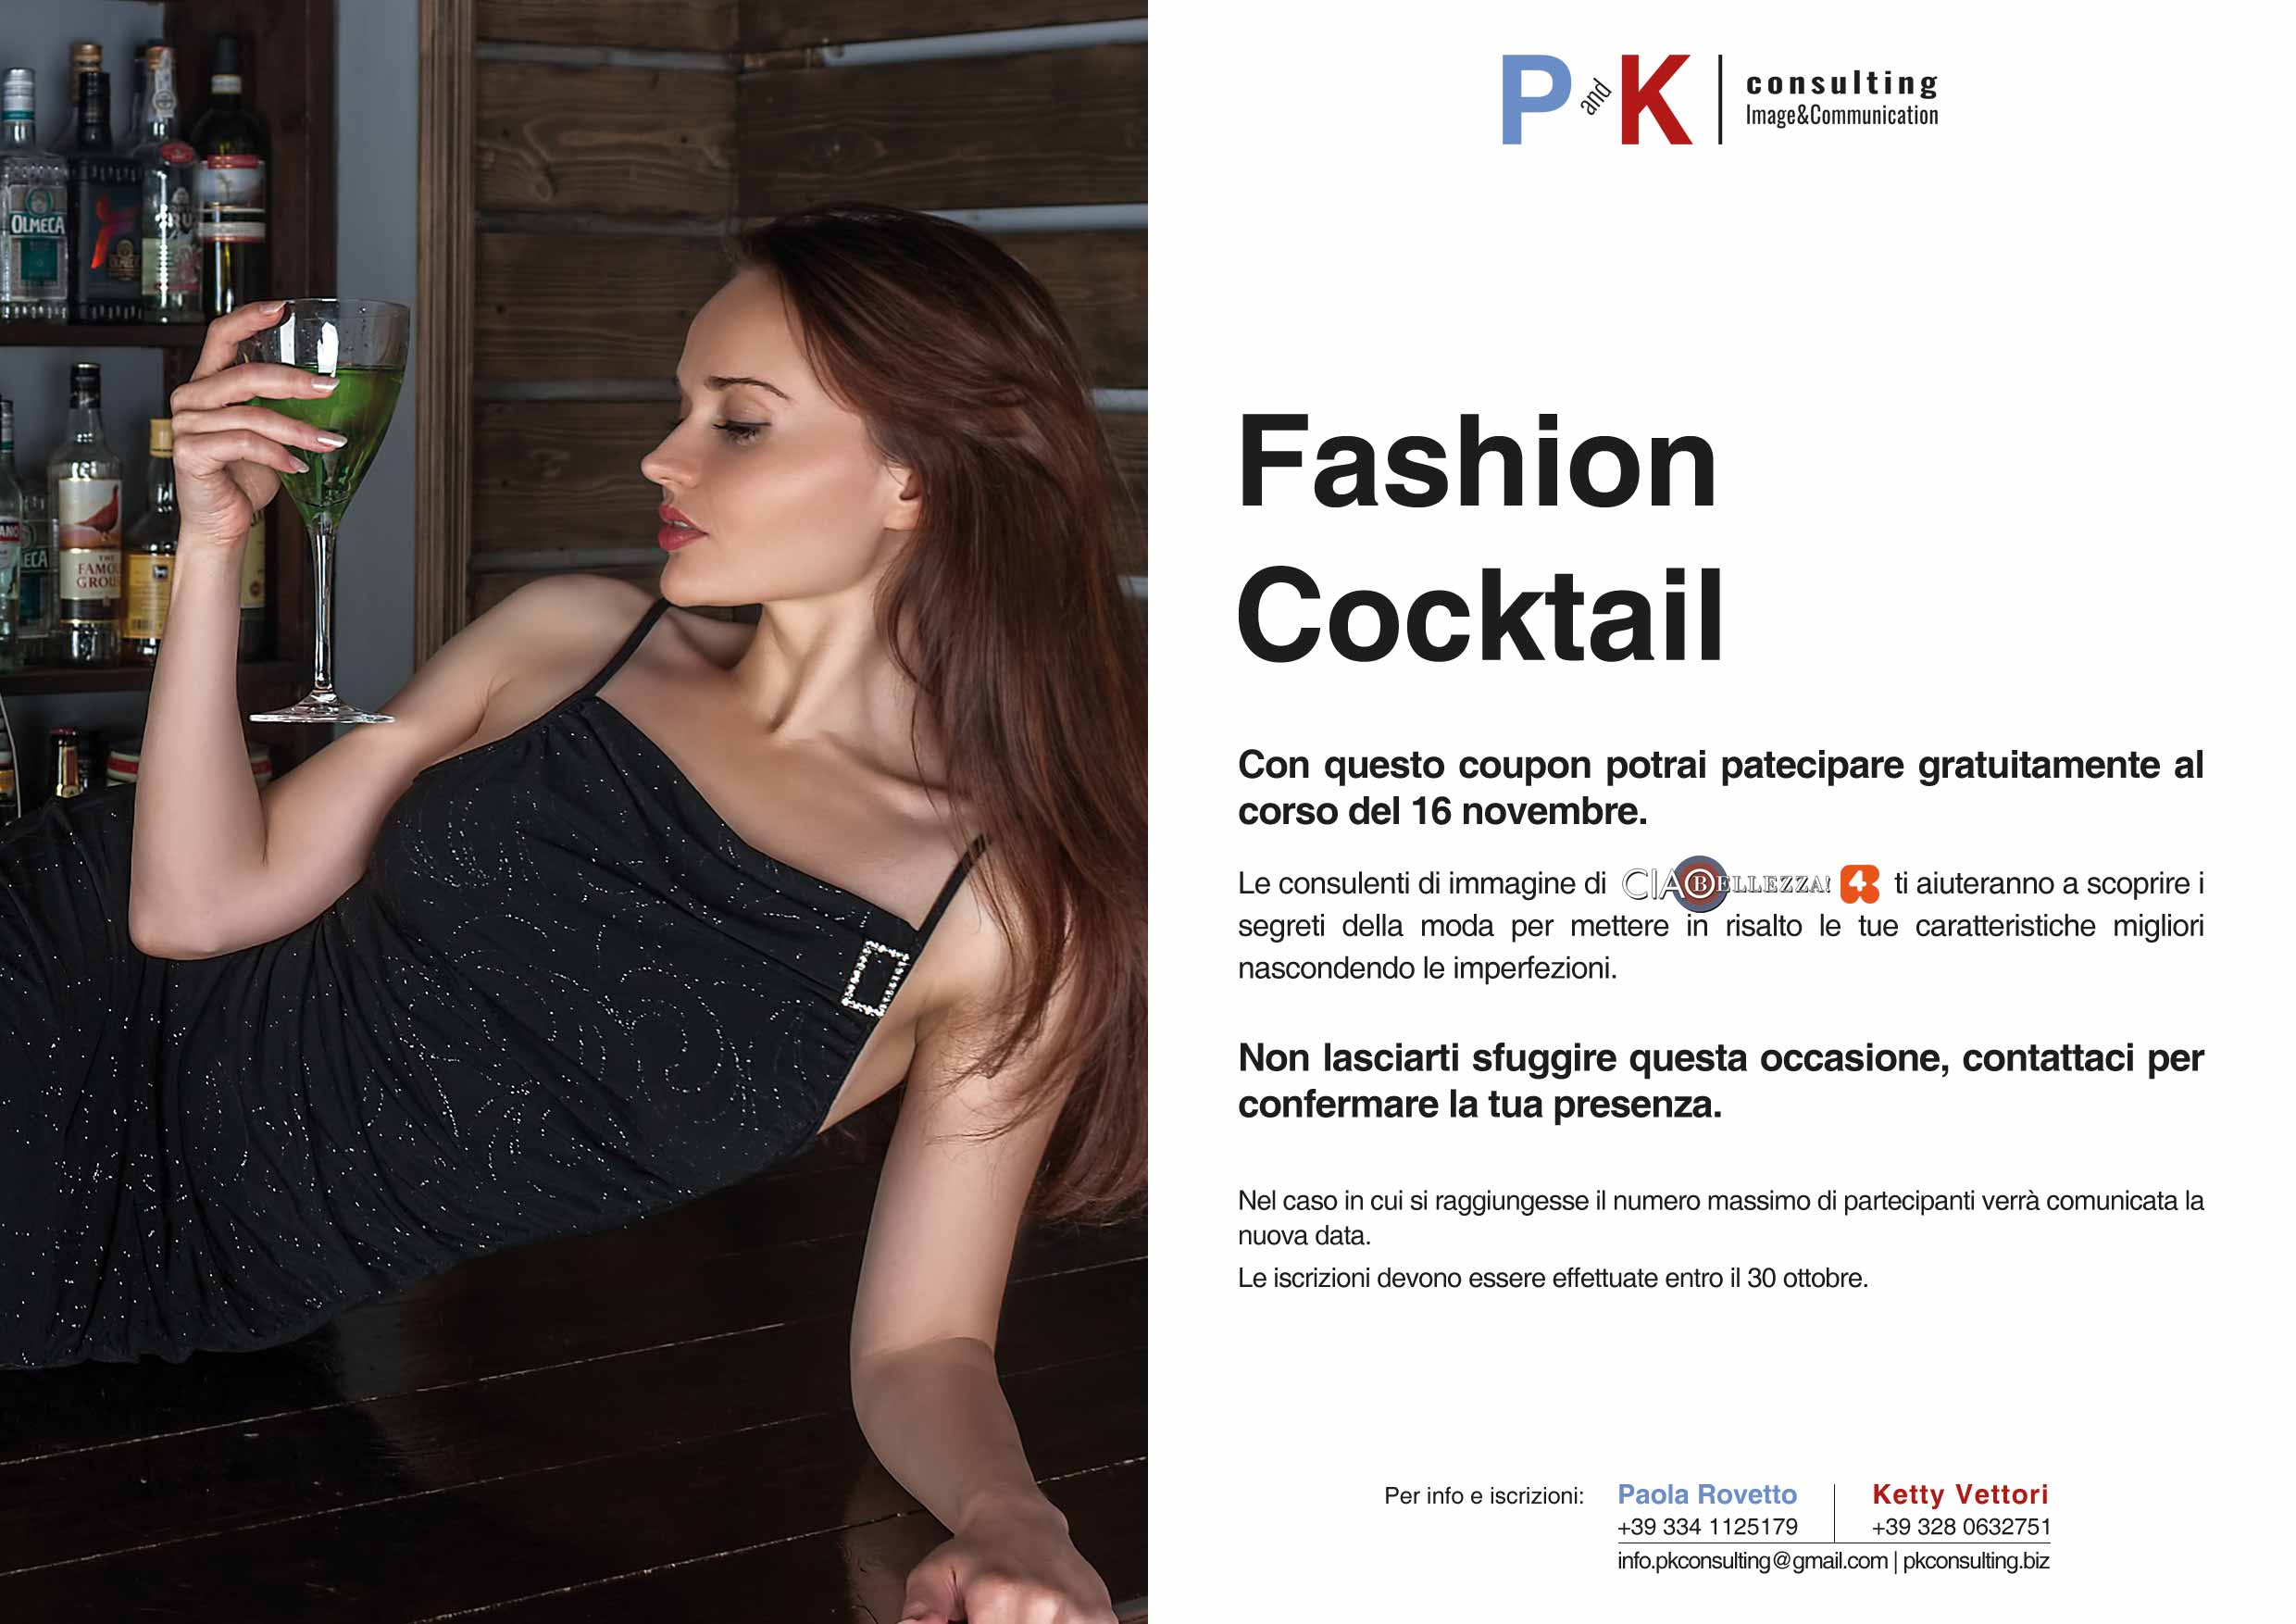 P&K Fashion Cocktail